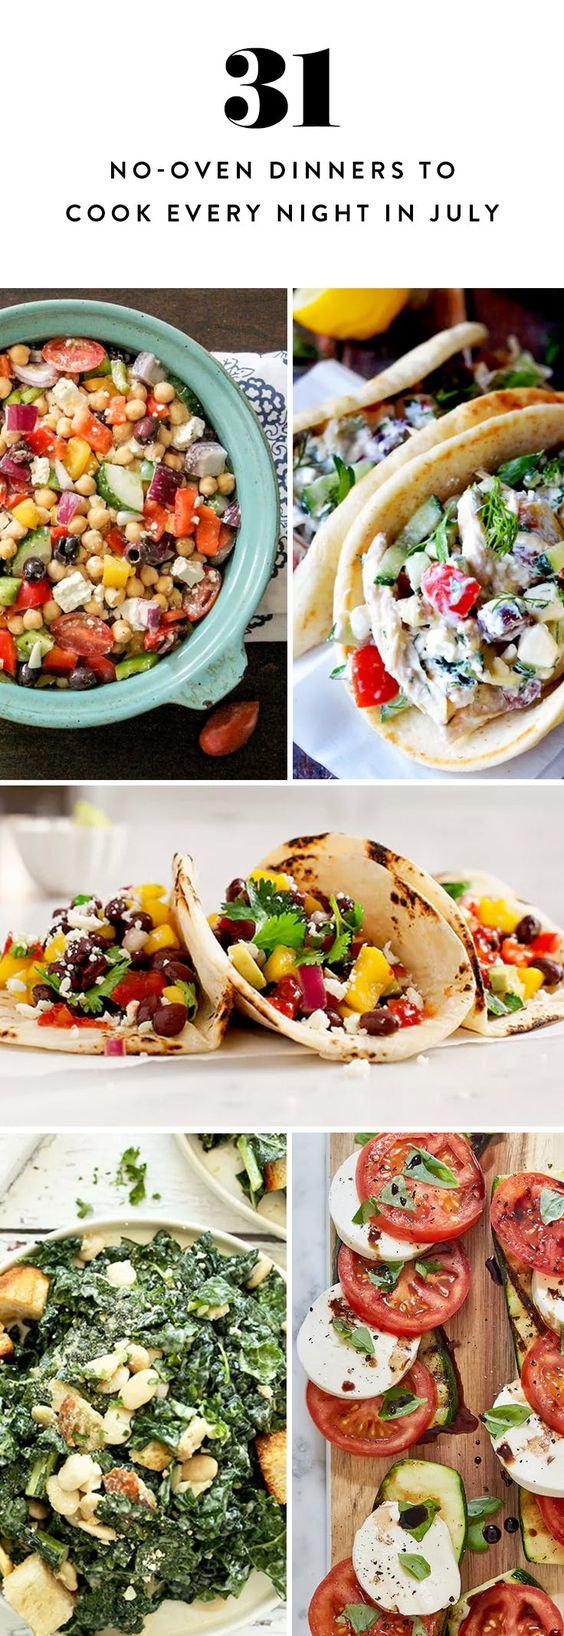 31 No-Oven Dinners to Cook Every Night in July